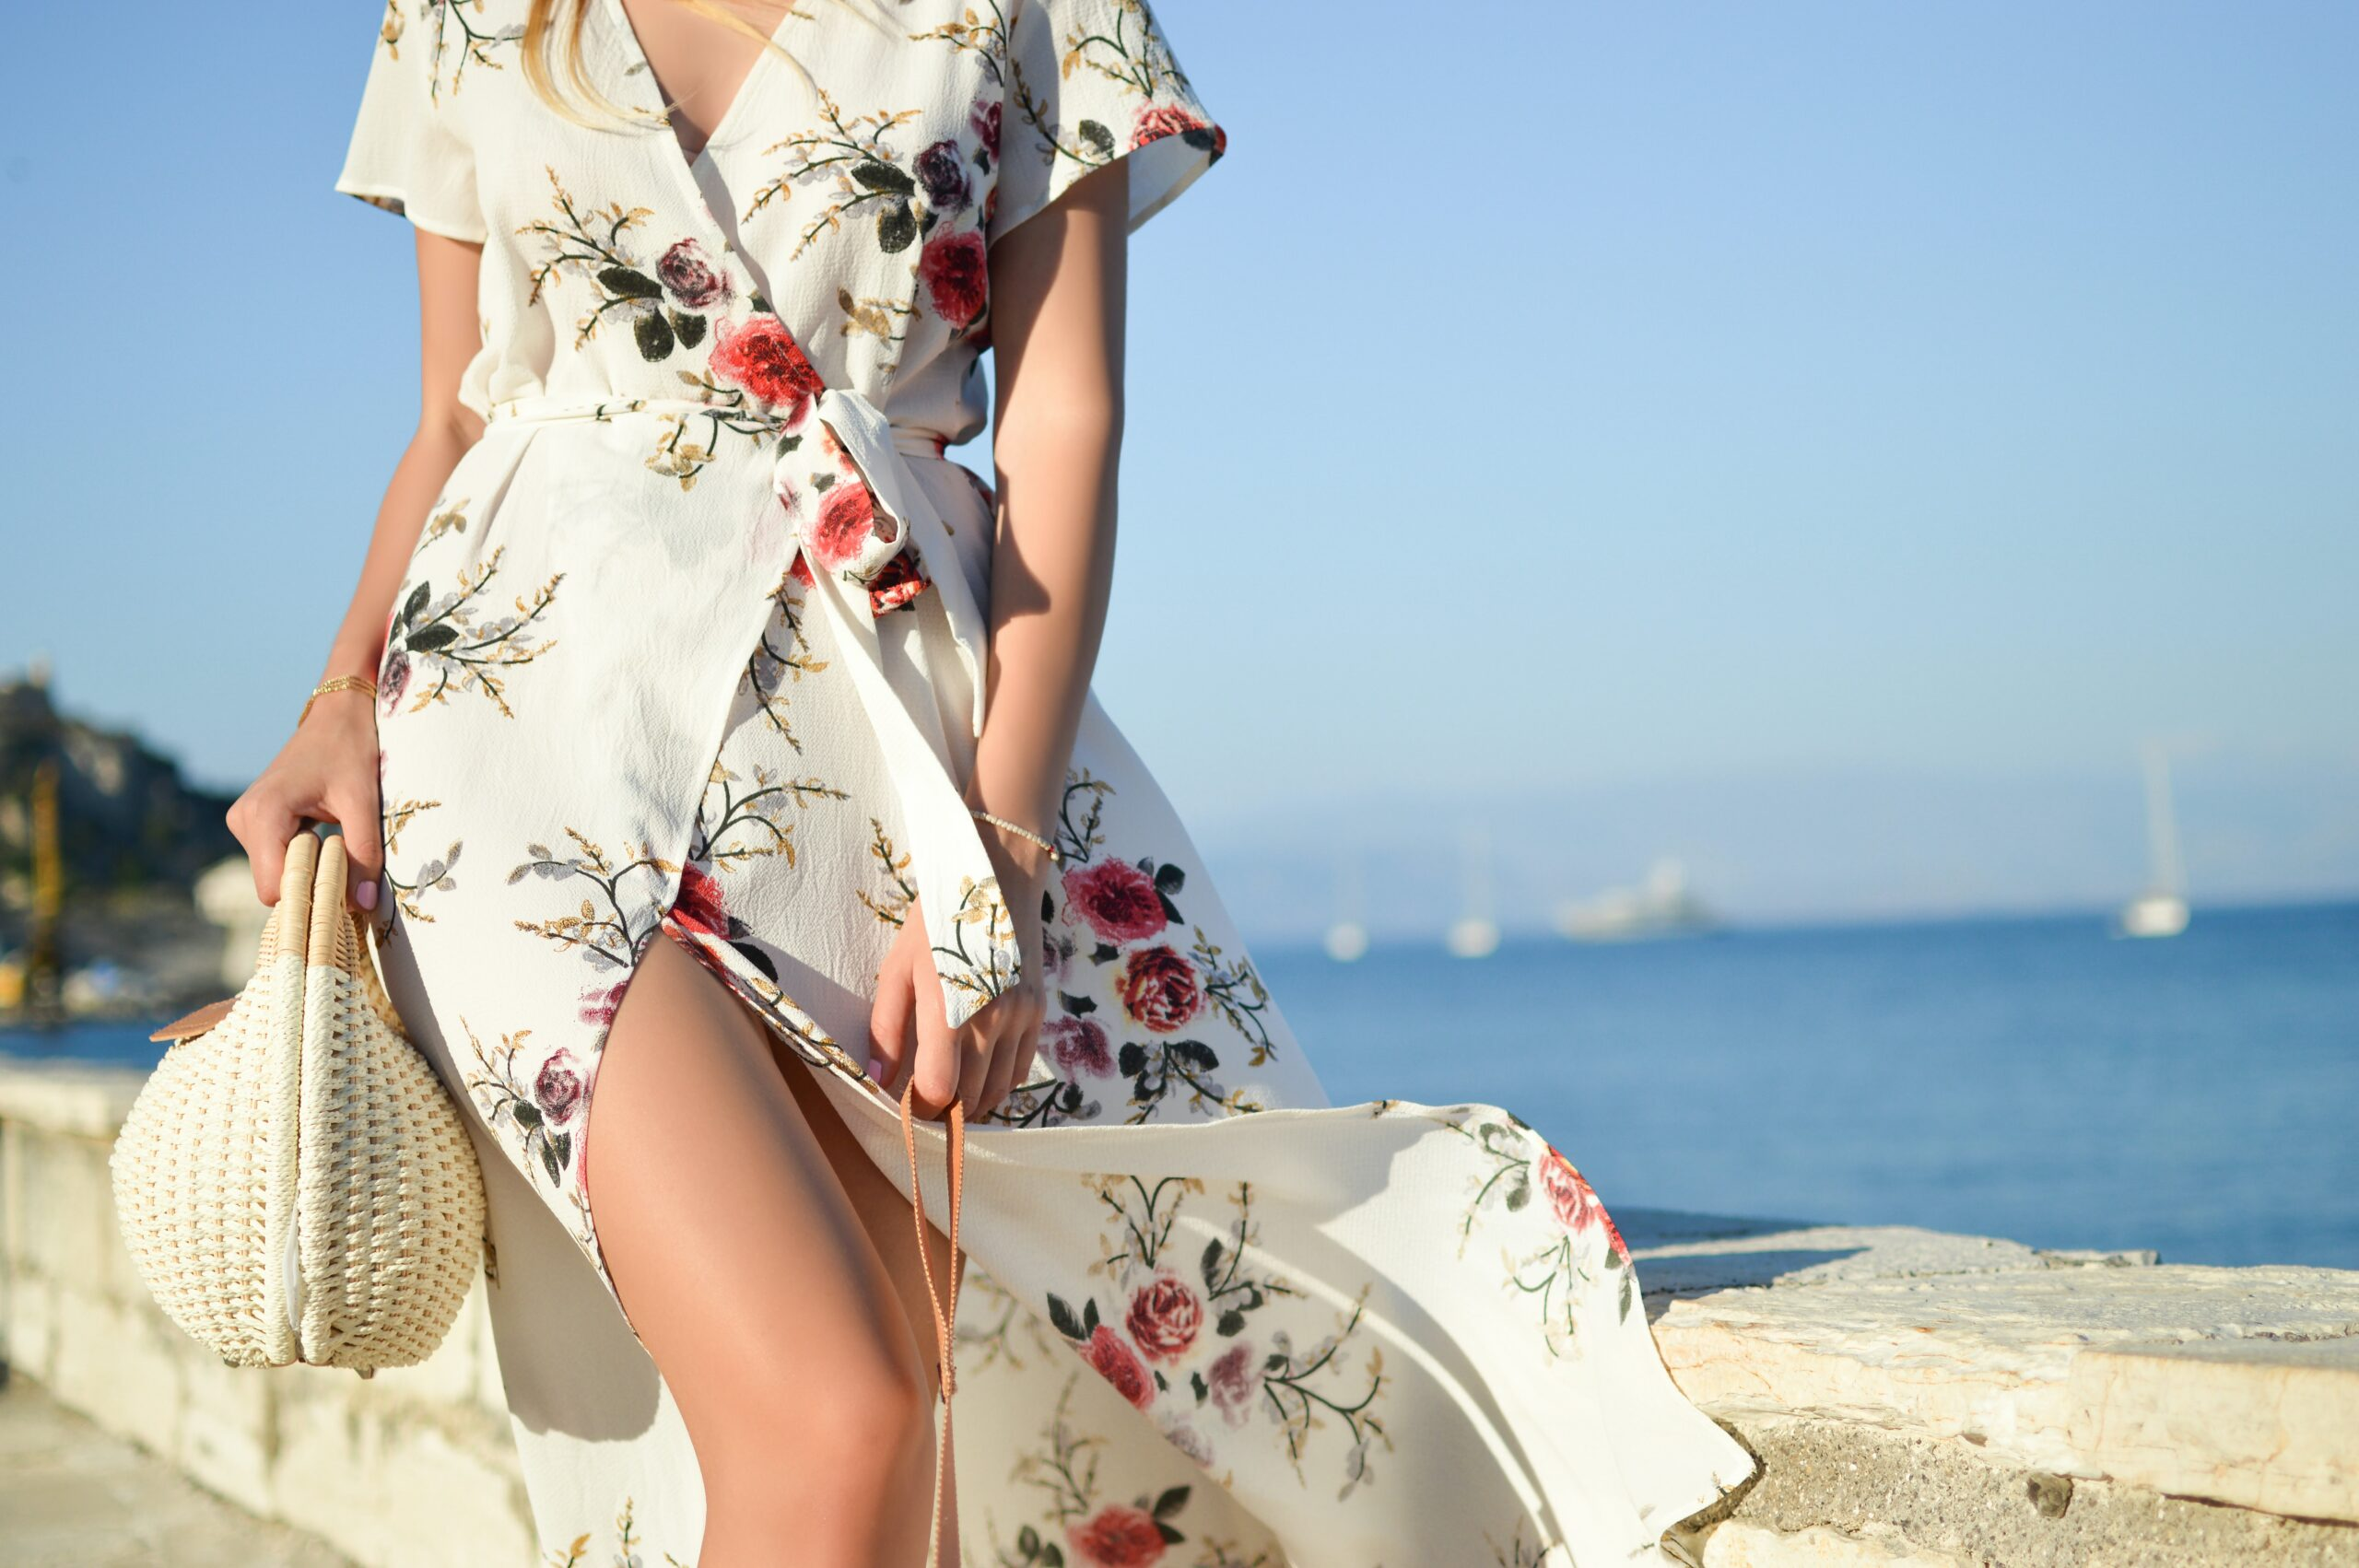 A lady walking by the sea in a white floral maxi dress